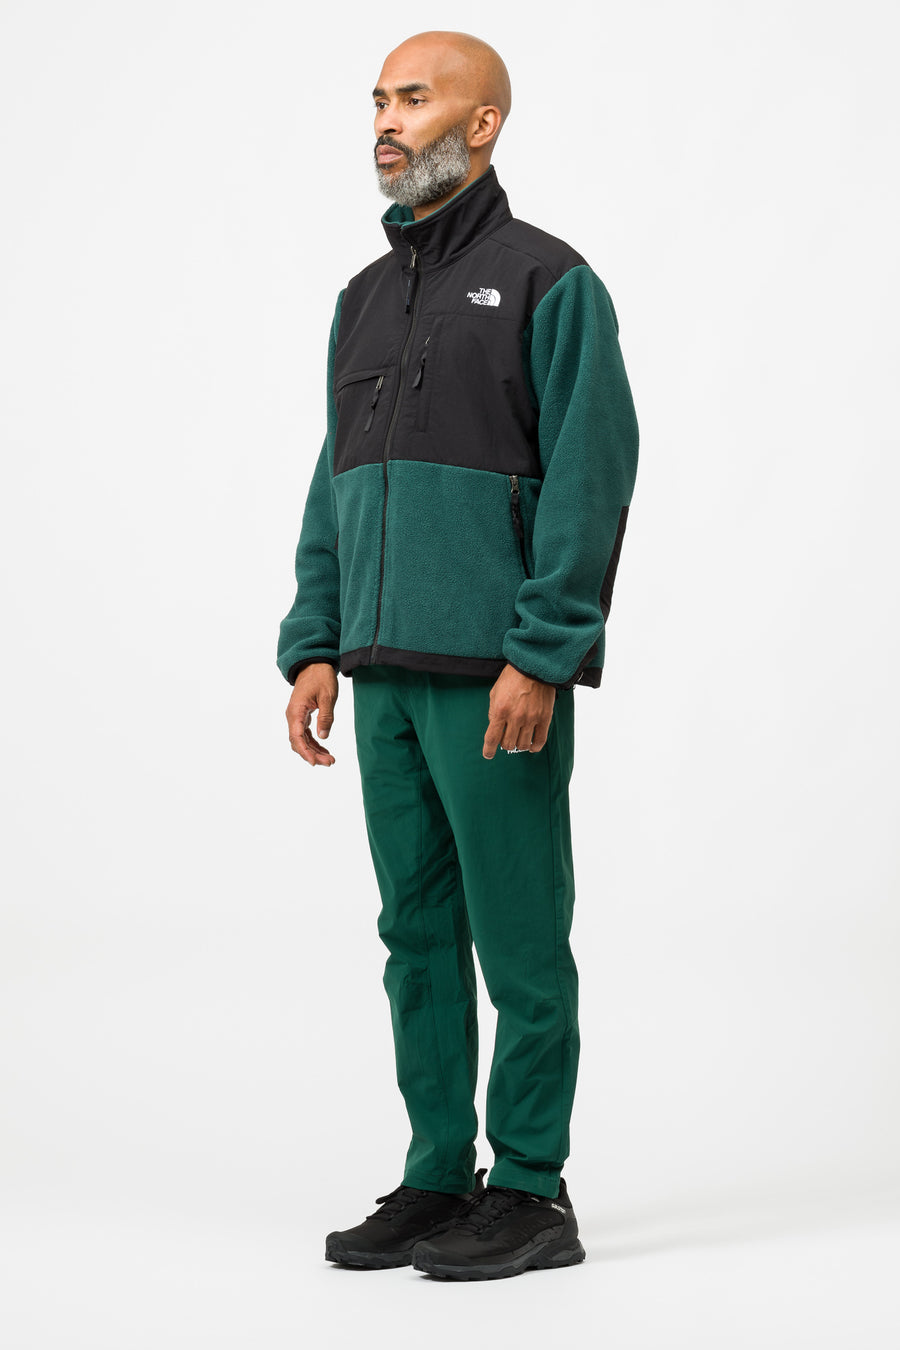 The North Face 95 Retro Denali Jacket in Night Green - Notre